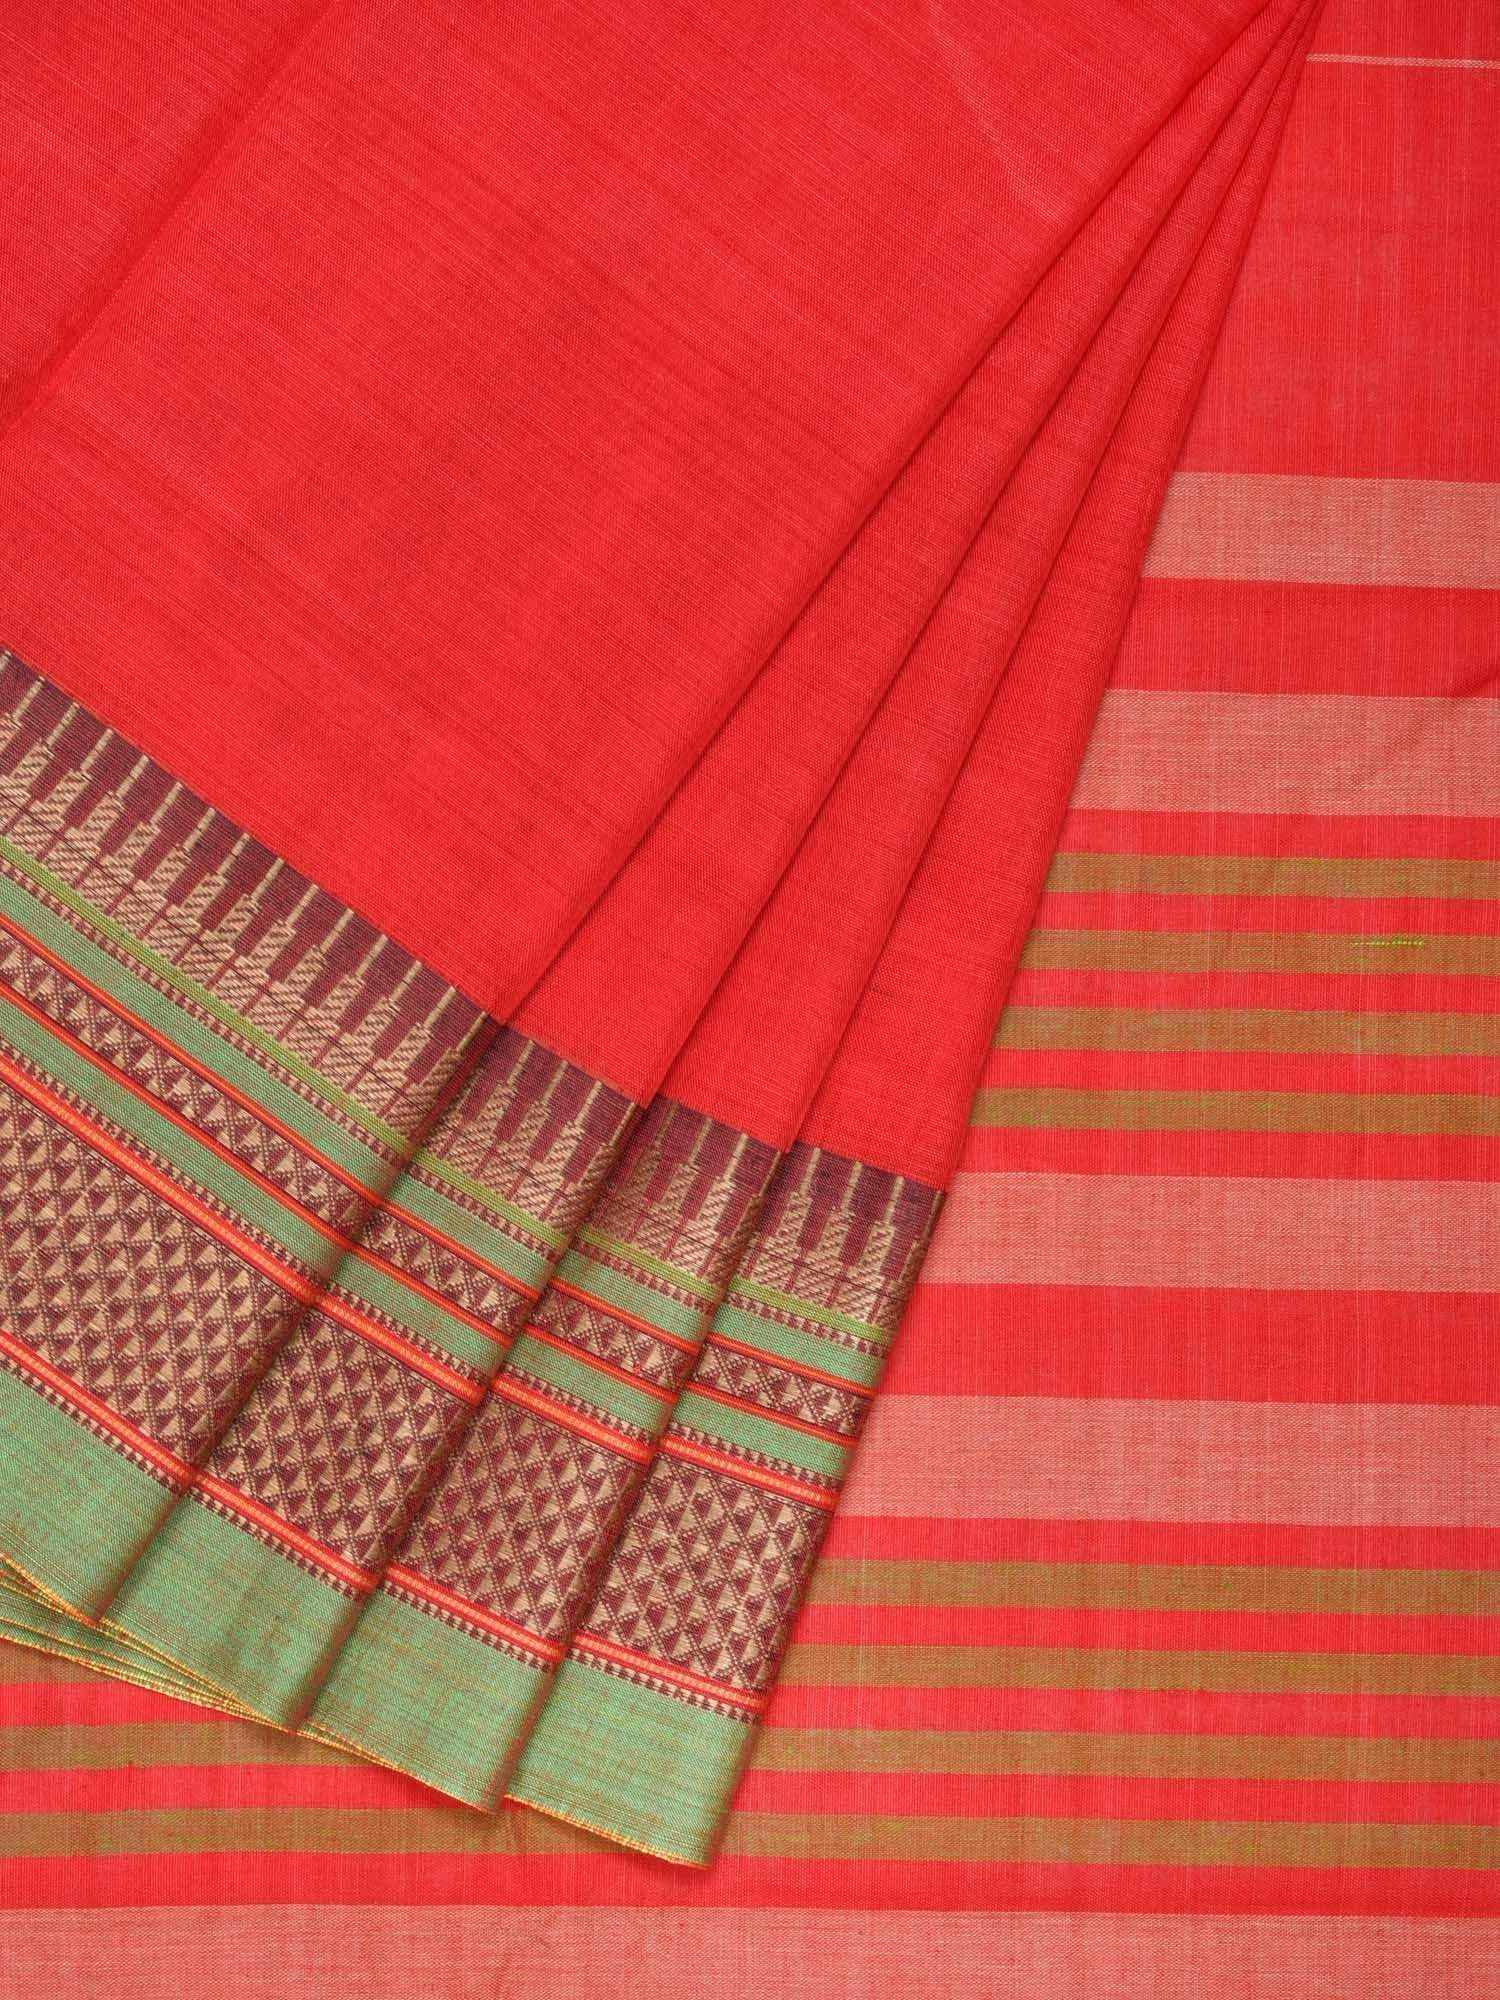 Red Narayanpet Cotton Handloom Plain Saree with Traditional Border Design No Blouse np0216